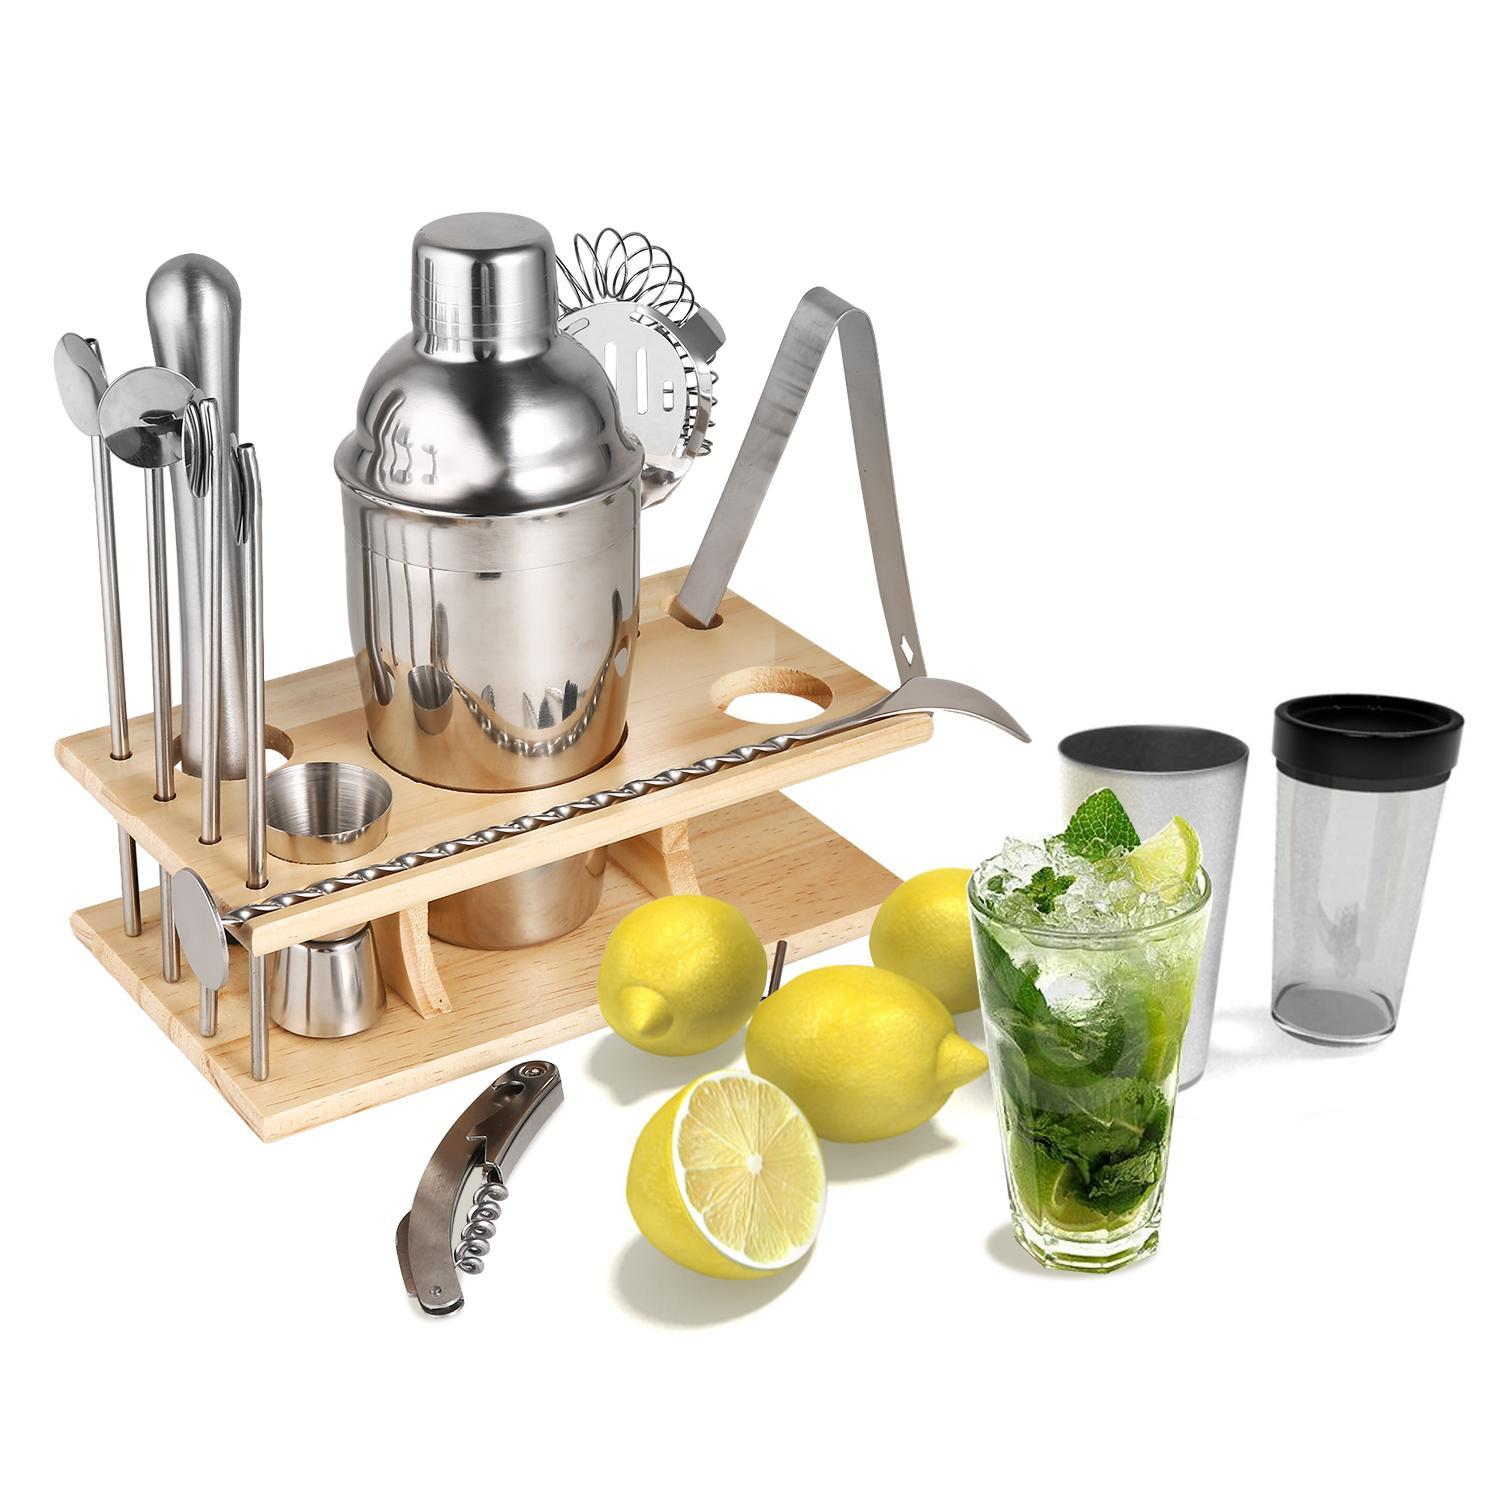 kitchen Bar Tools 14 Piece Stainless Steel Bartender Cocktail Set Base, Shaker, Strainer, Muddler, Pourers, Stirrer, Corkscrew, Double Jigger, Tongs ROJE